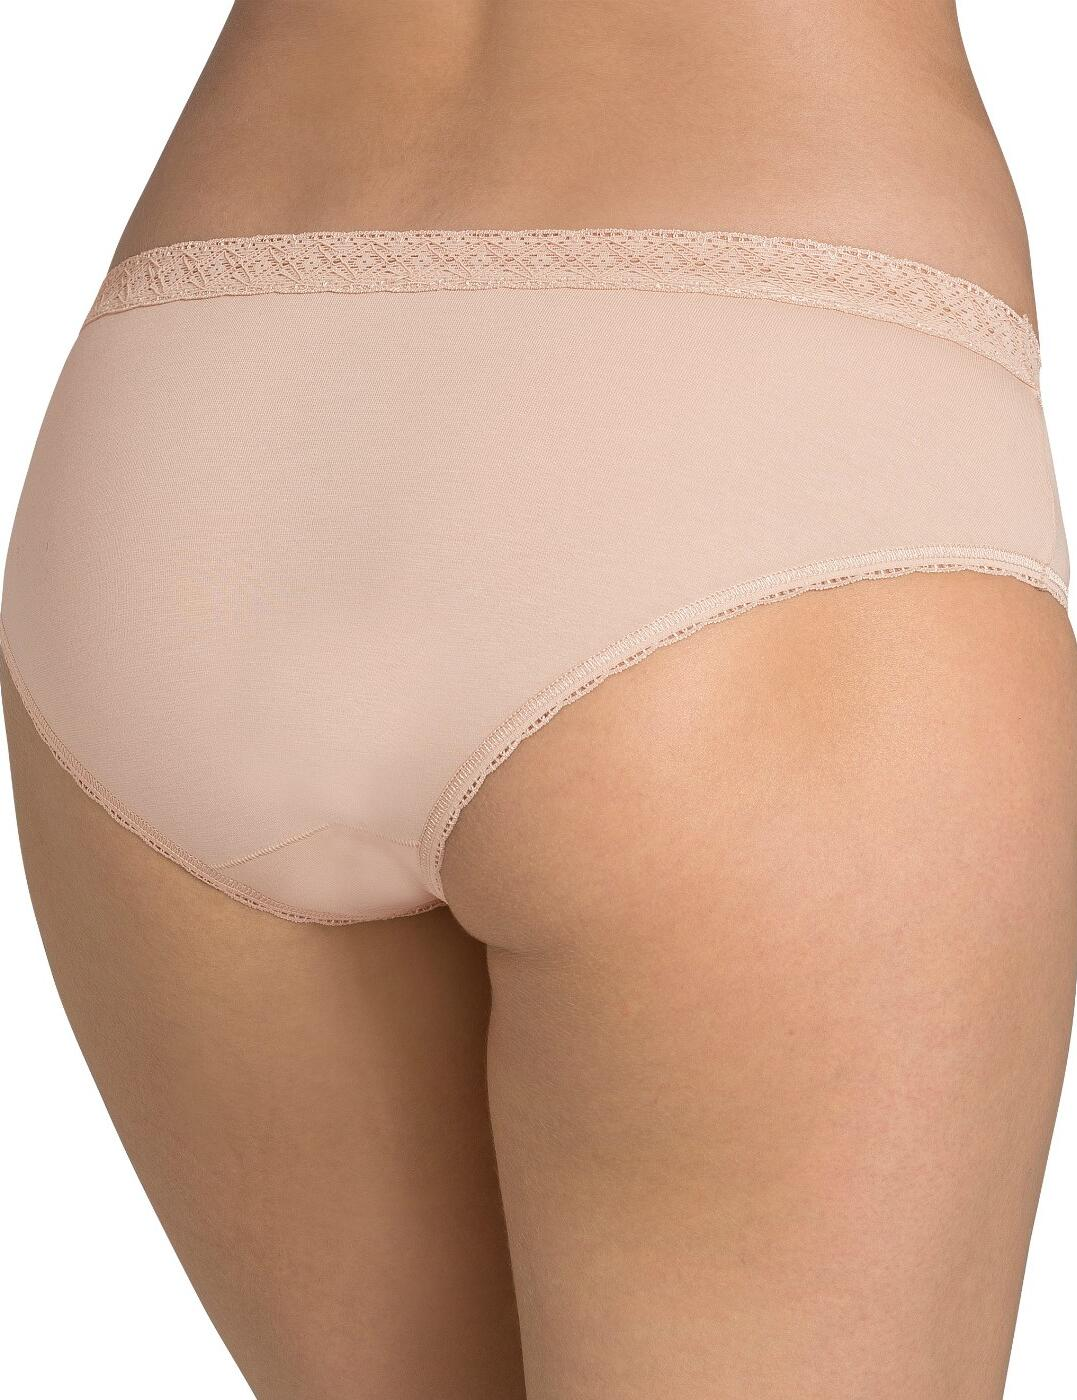 Sloggi-EverNew-Lace-Hipster-Knickers-Brief-10162961-Black-White-Nude